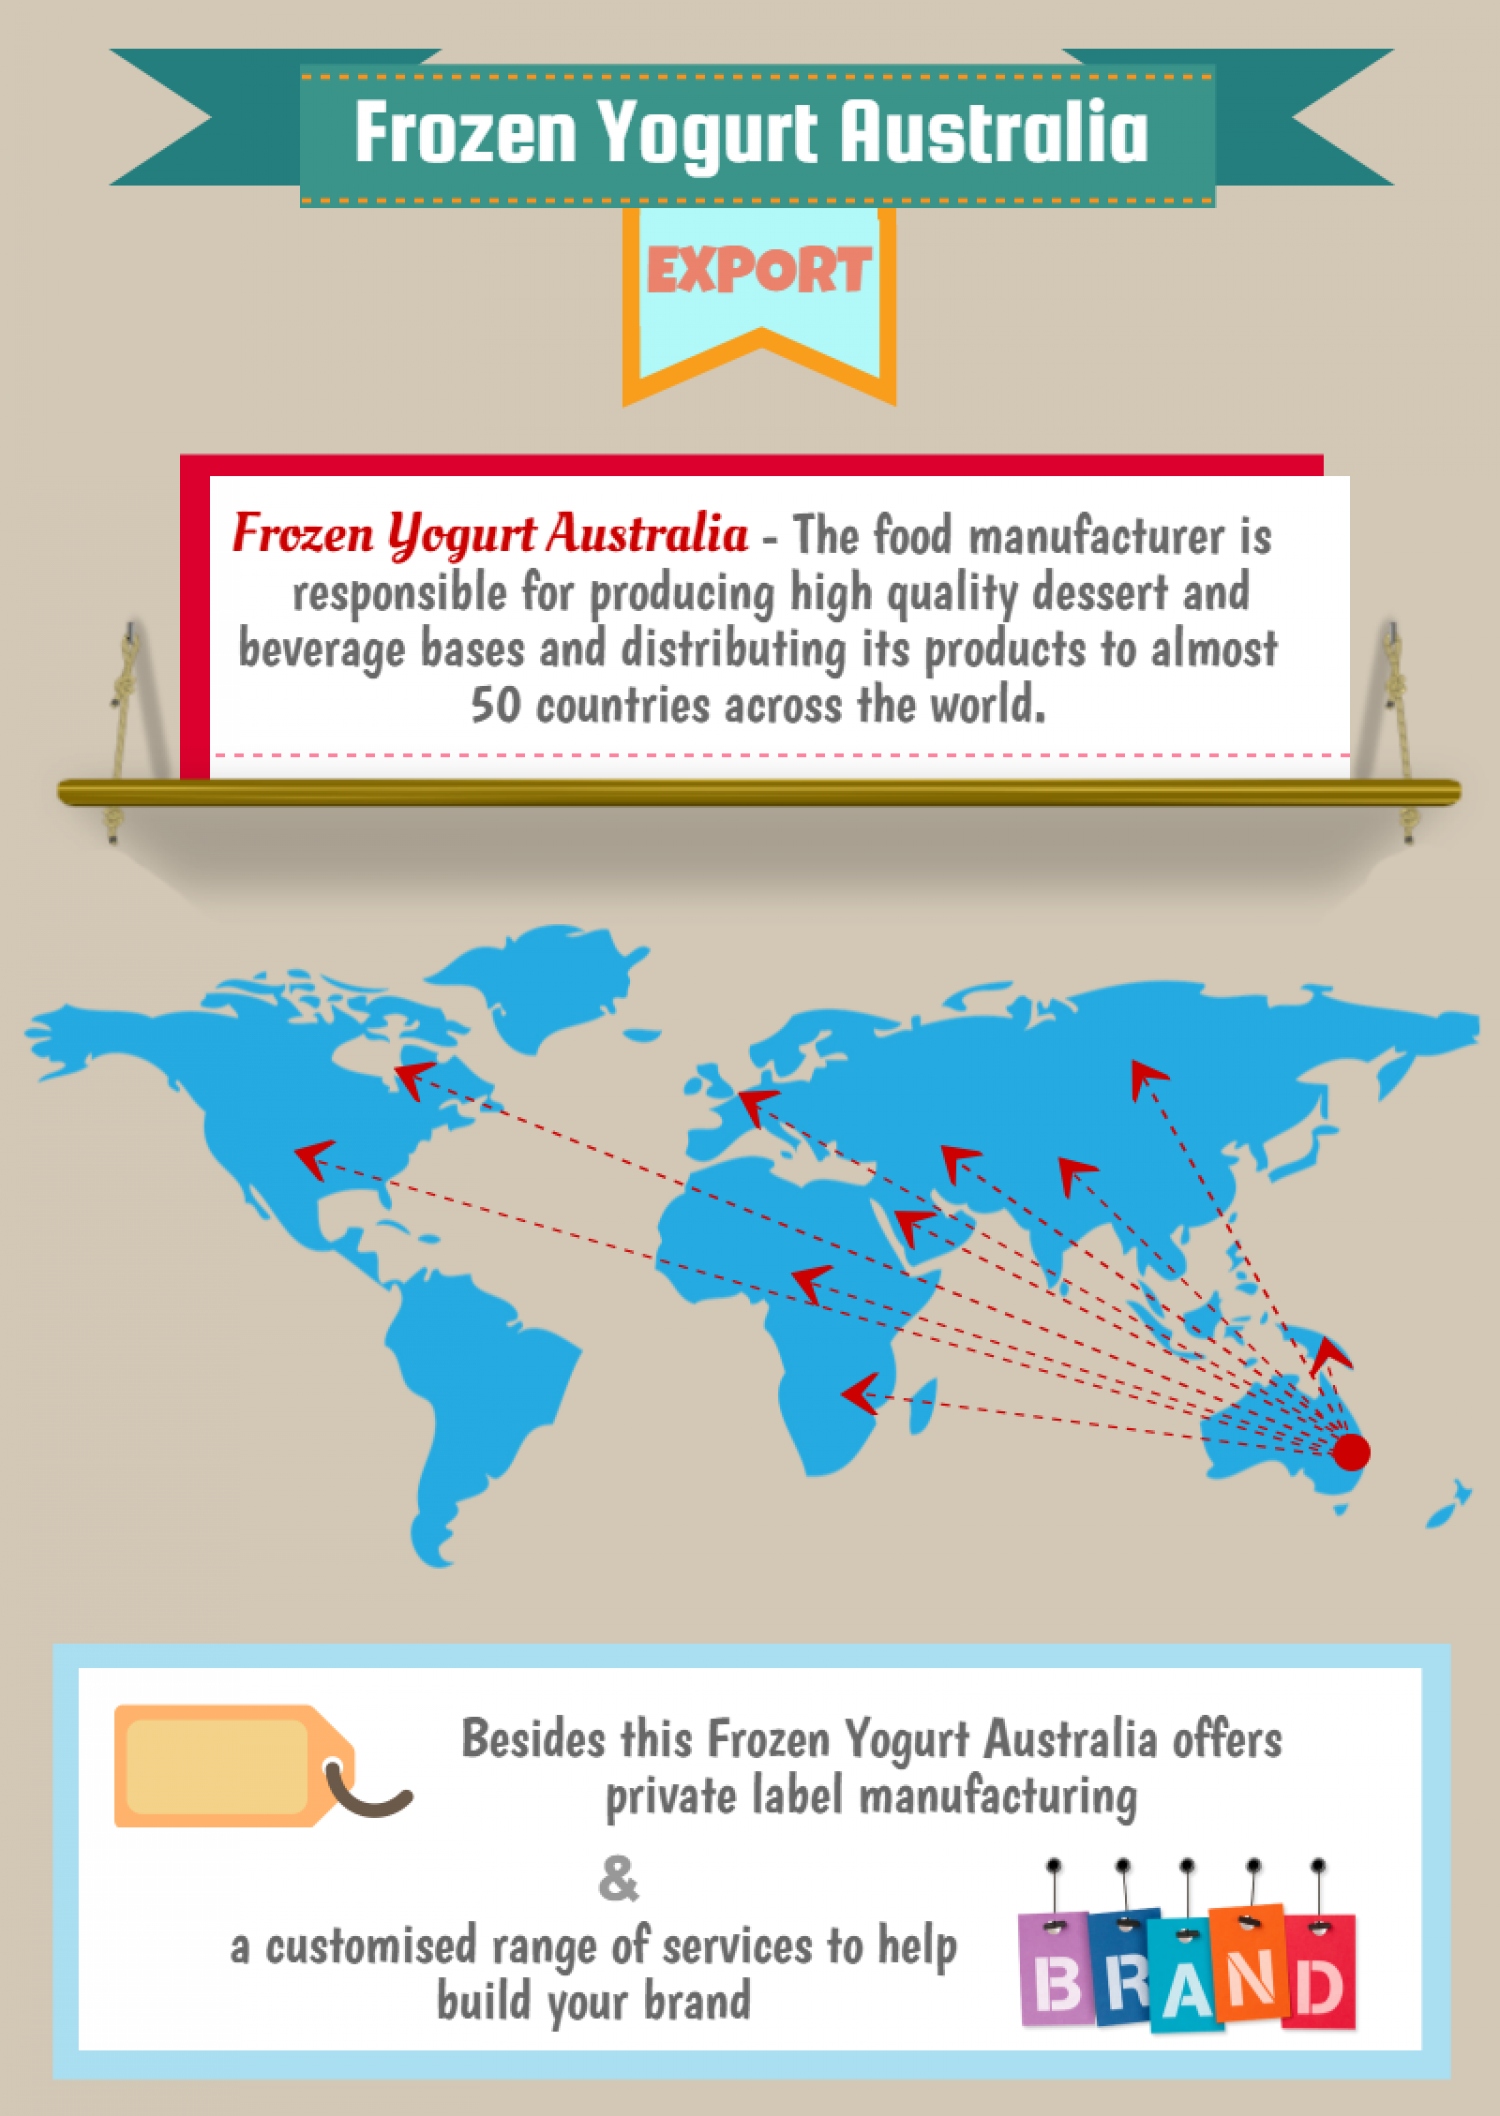 Frozen Yogurt Australia - Export Infographic